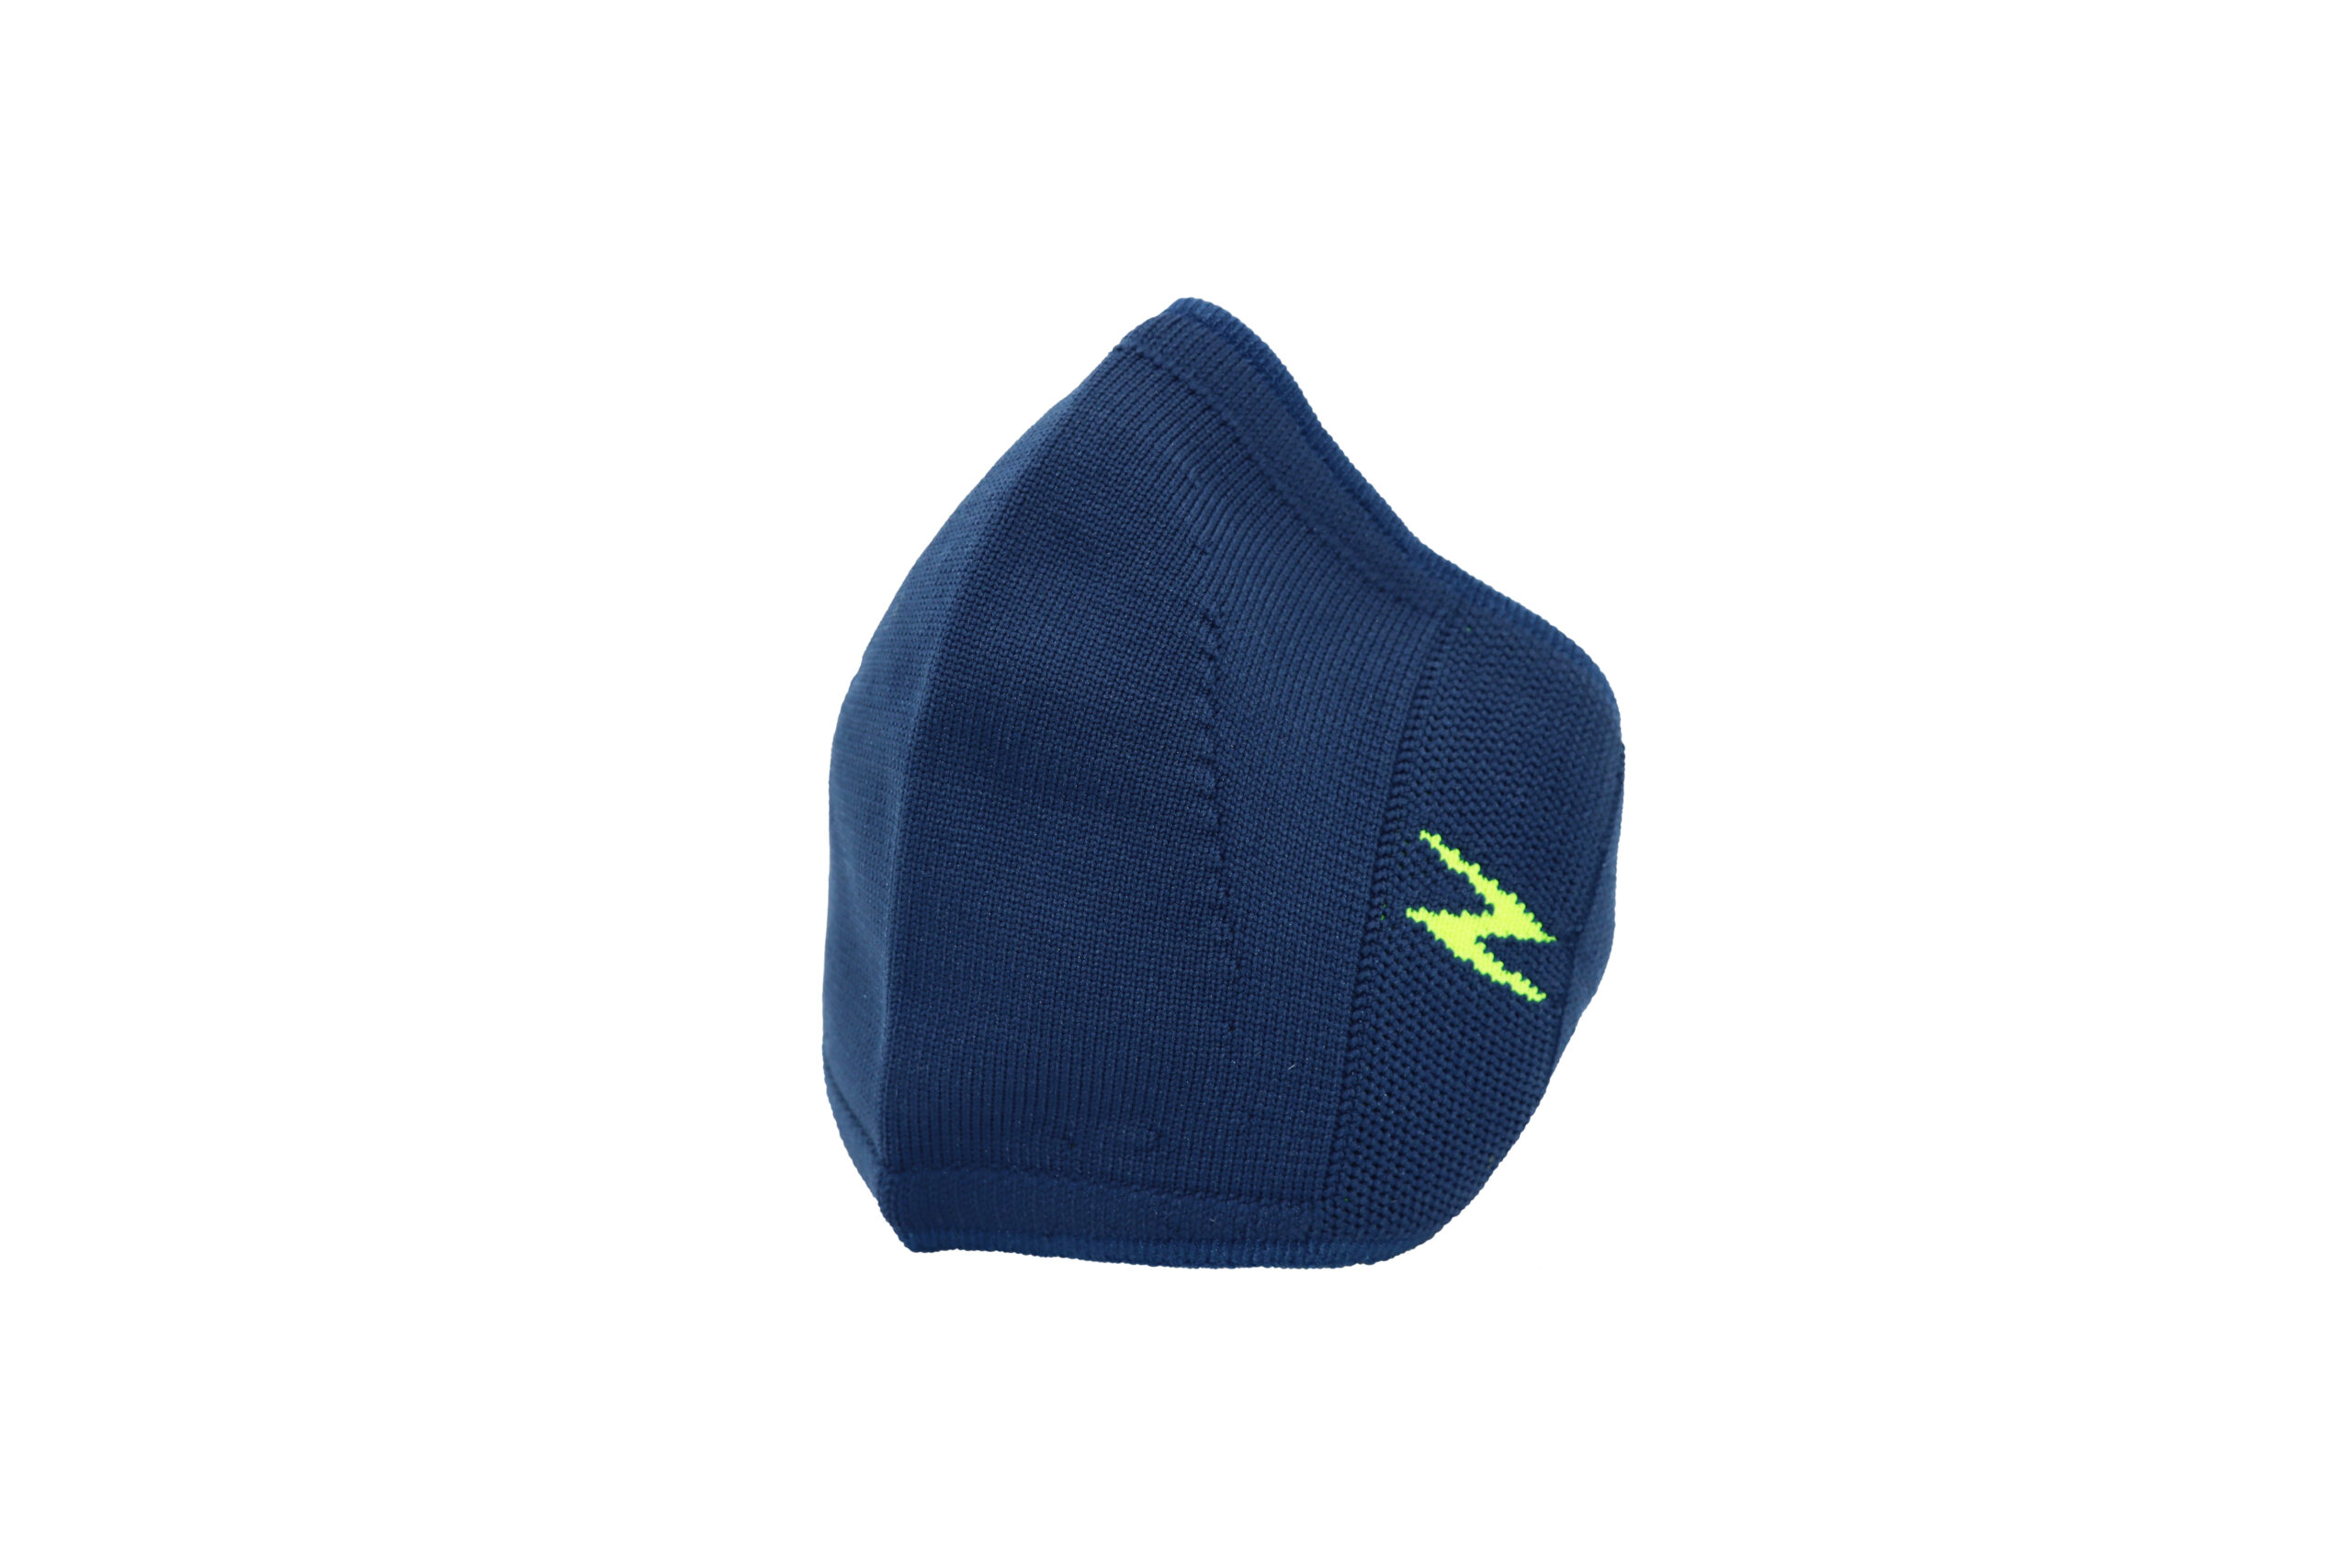 Blue reusable face covering